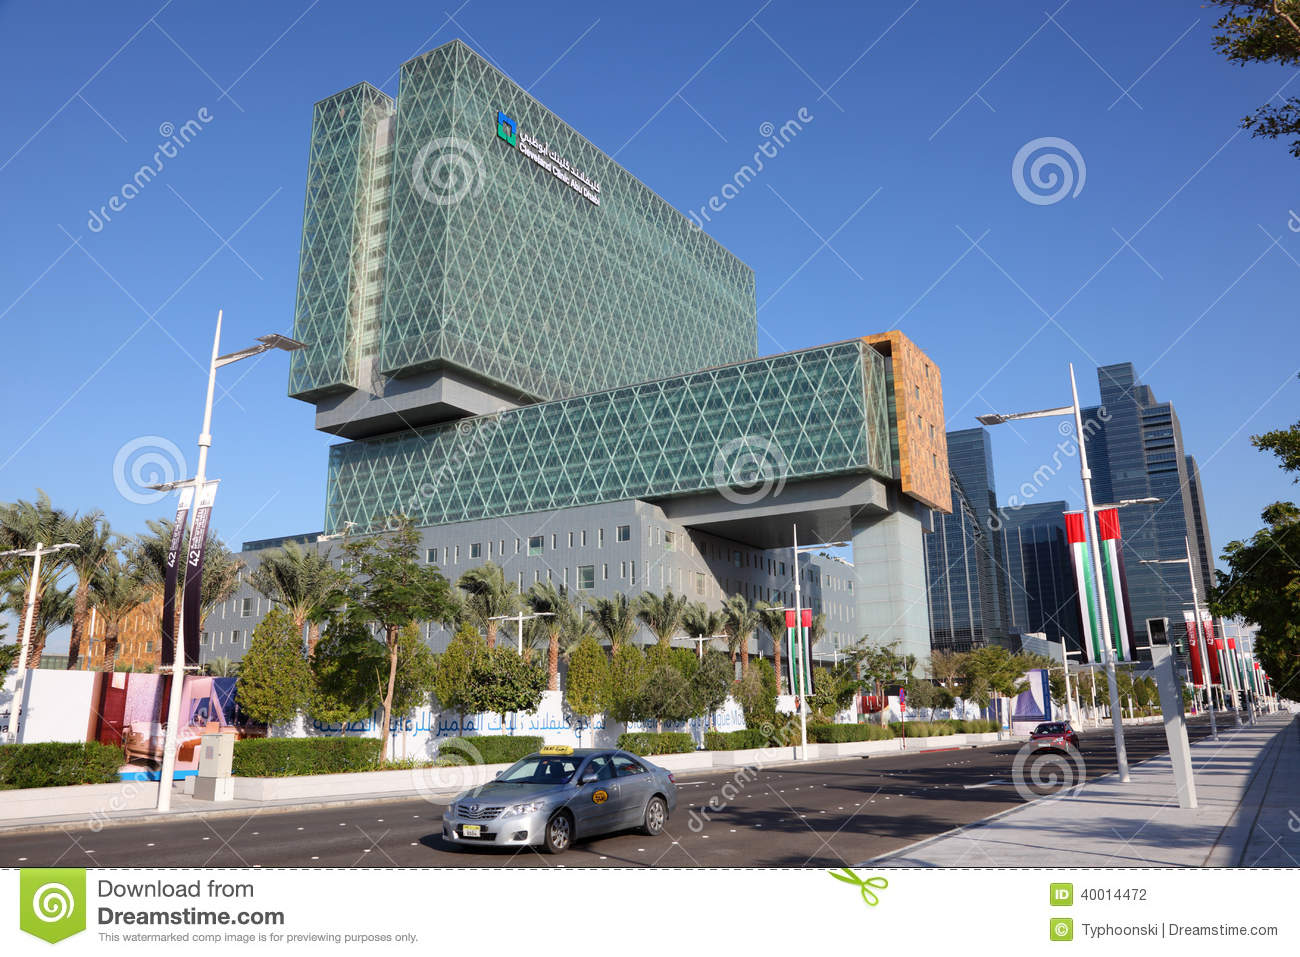 Cleveland (MS) United States  city photos gallery : Cleveland Clinic In Abu Dhabi Editorial Photography Image: 40014472